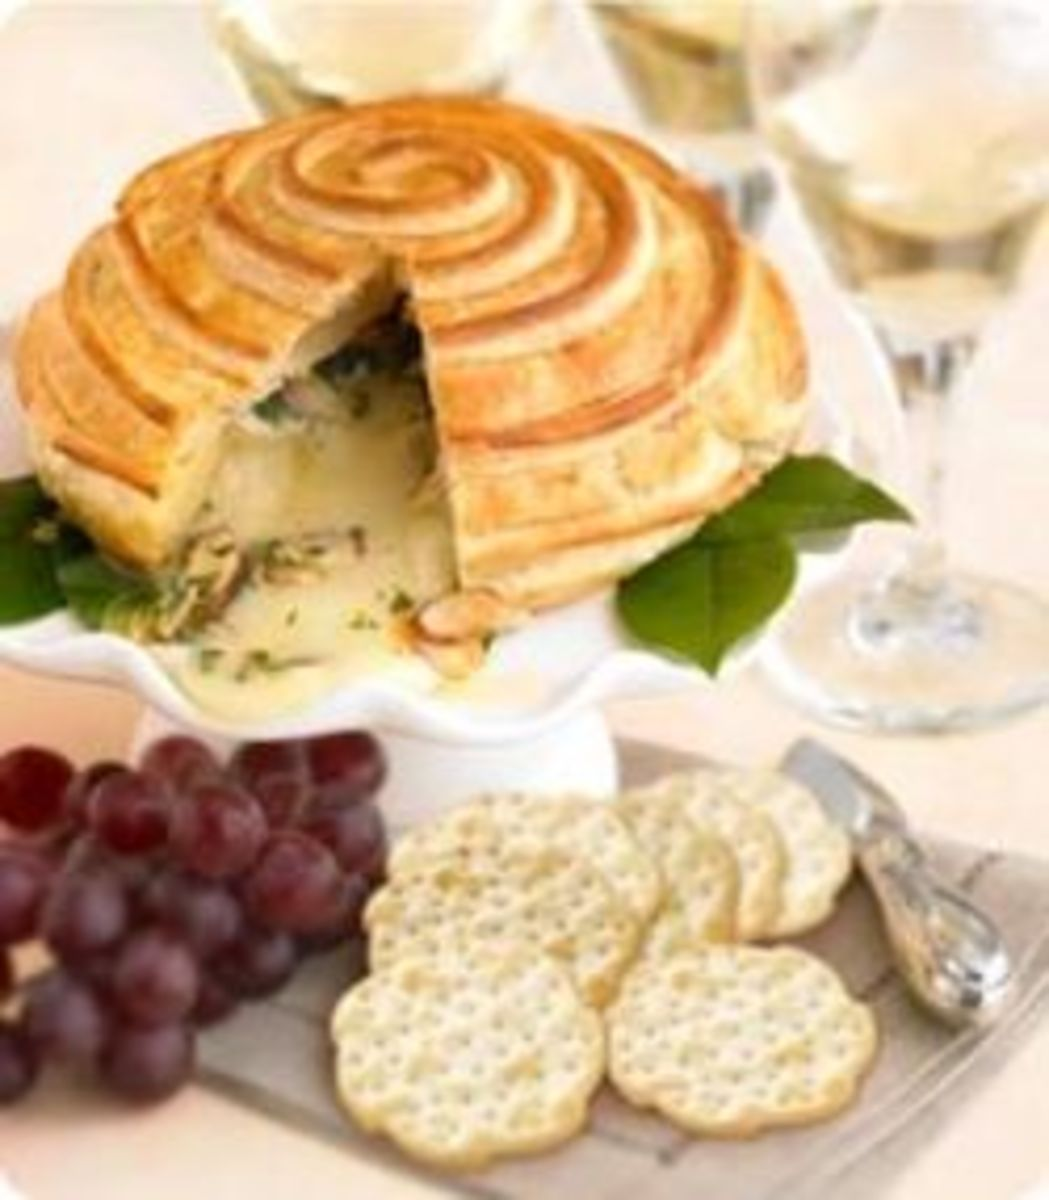 Pepperidge Farm Baked Brie